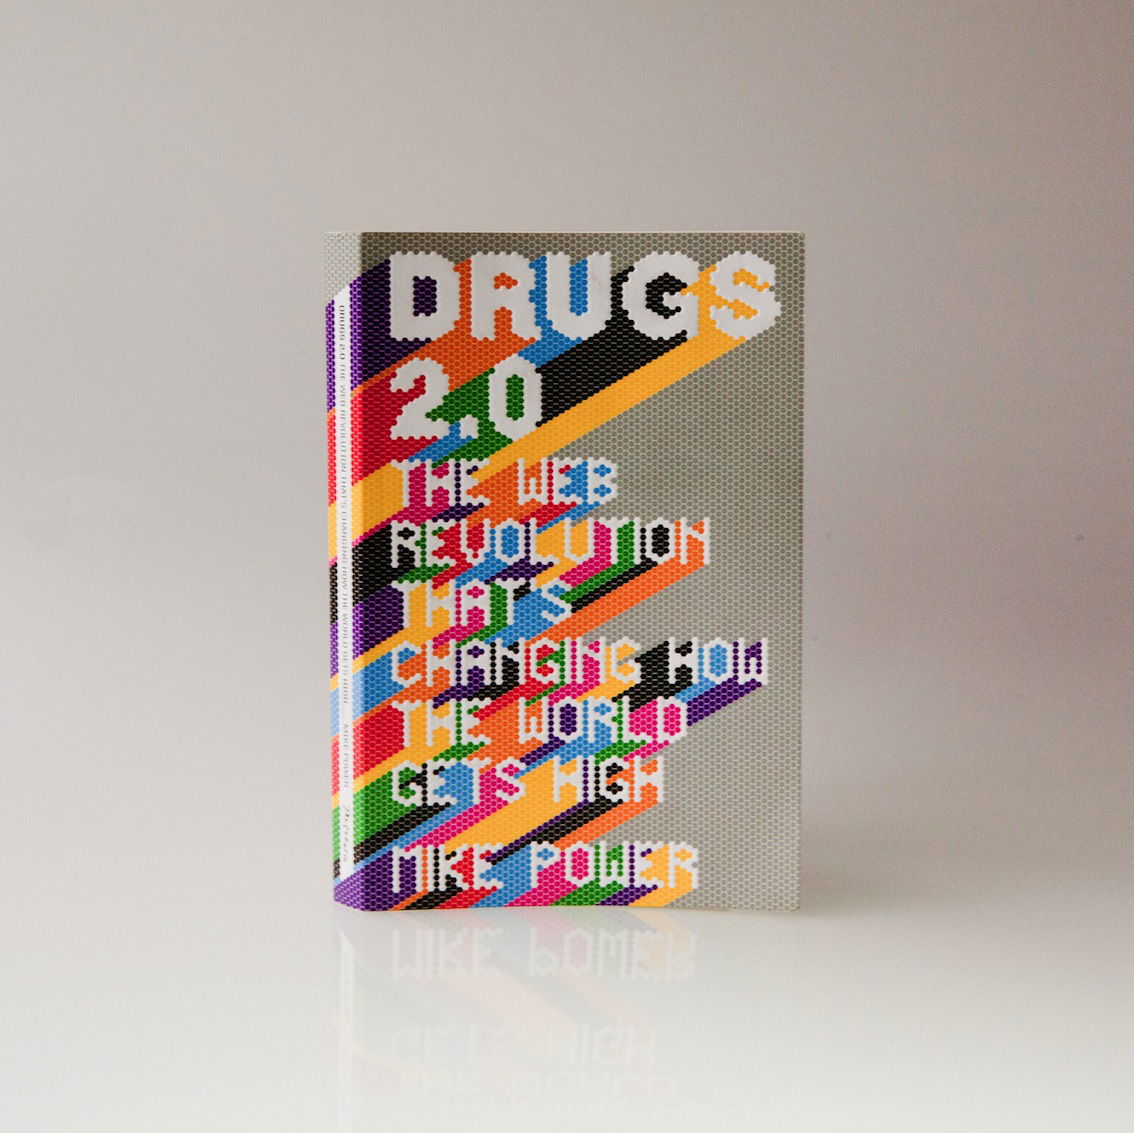 Mike Power, Drugs 2.0, Alexander Shulgin, sanyassin, Bhagwan Shree Rajnesh, Erowid, Bluelight